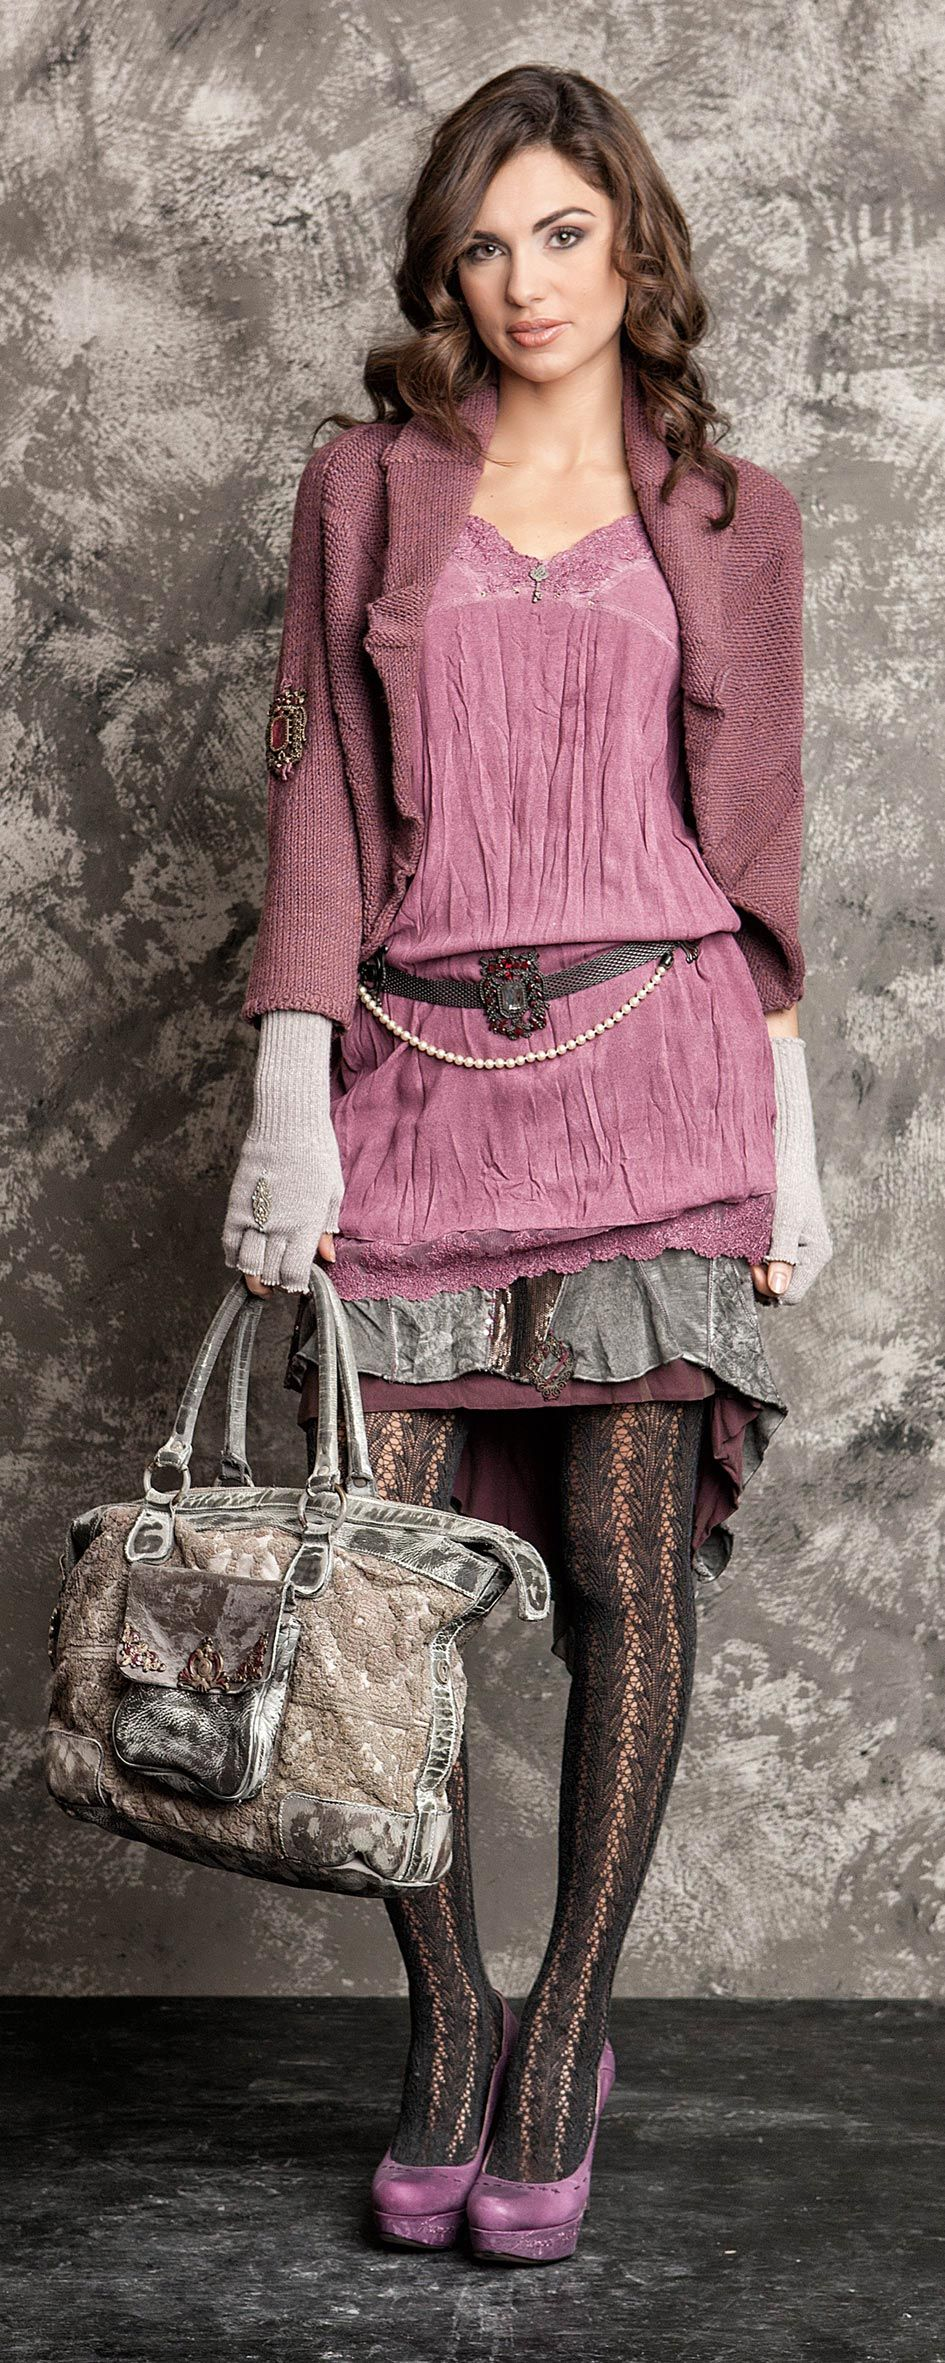 Outfits inspired in Romeo and Juliet | Fashion And Clothing · Find ...